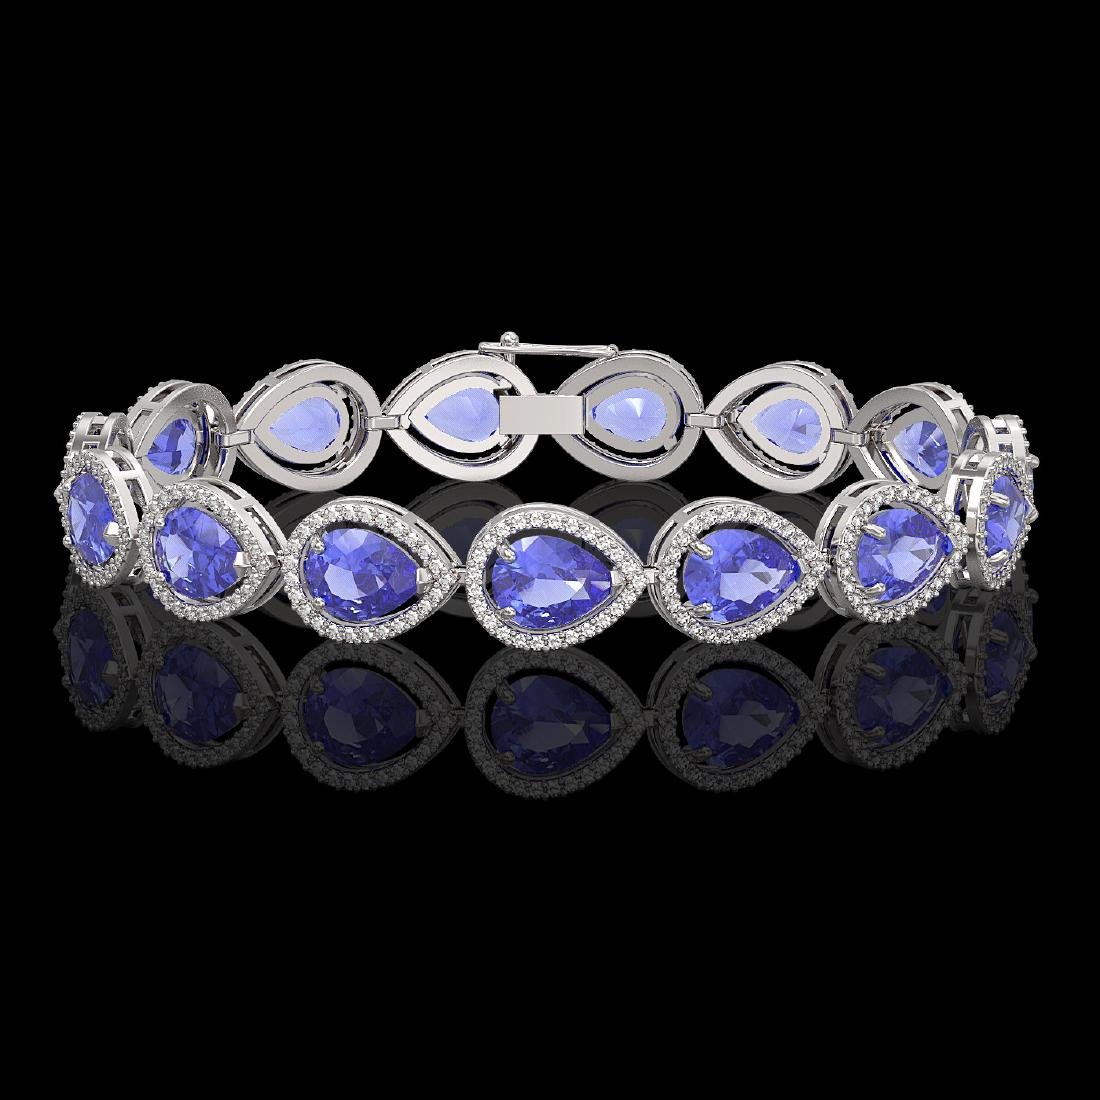 21.06 CTW Tanzanite & Diamond Halo Bracelet 10K White